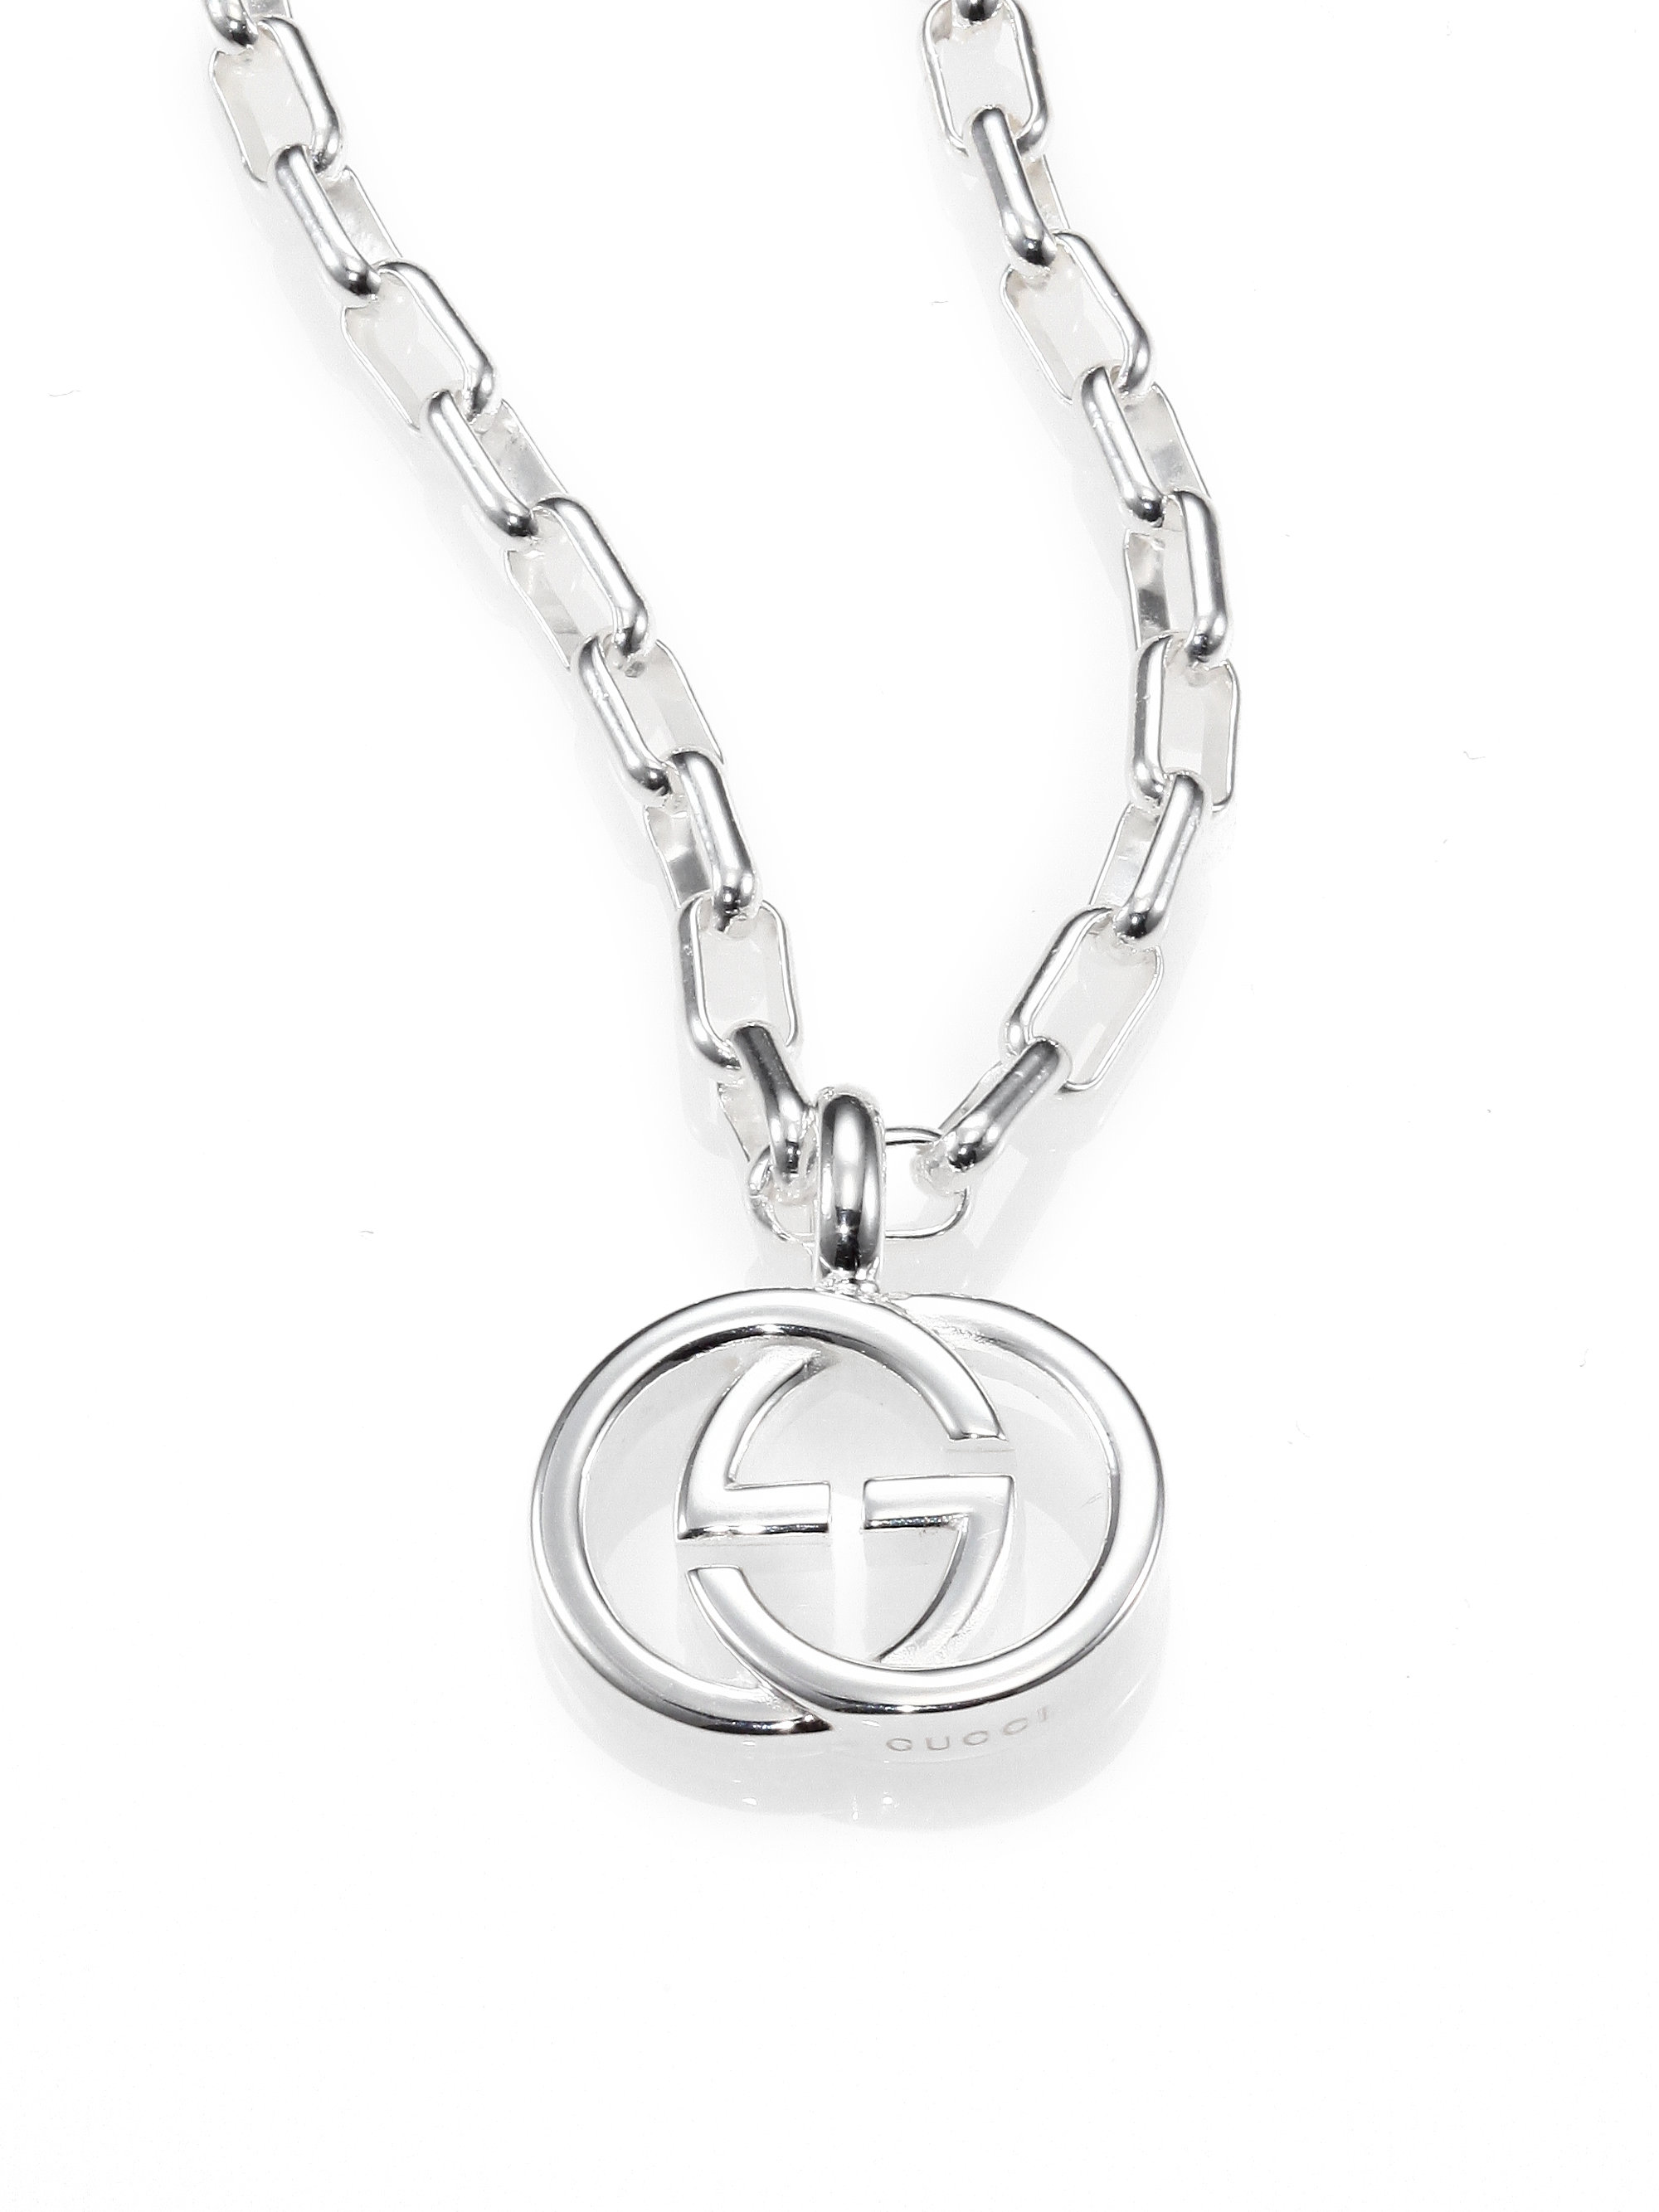 Lyst gucci sterling silver interlocking gg pendant necklace in gallery mozeypictures Choice Image